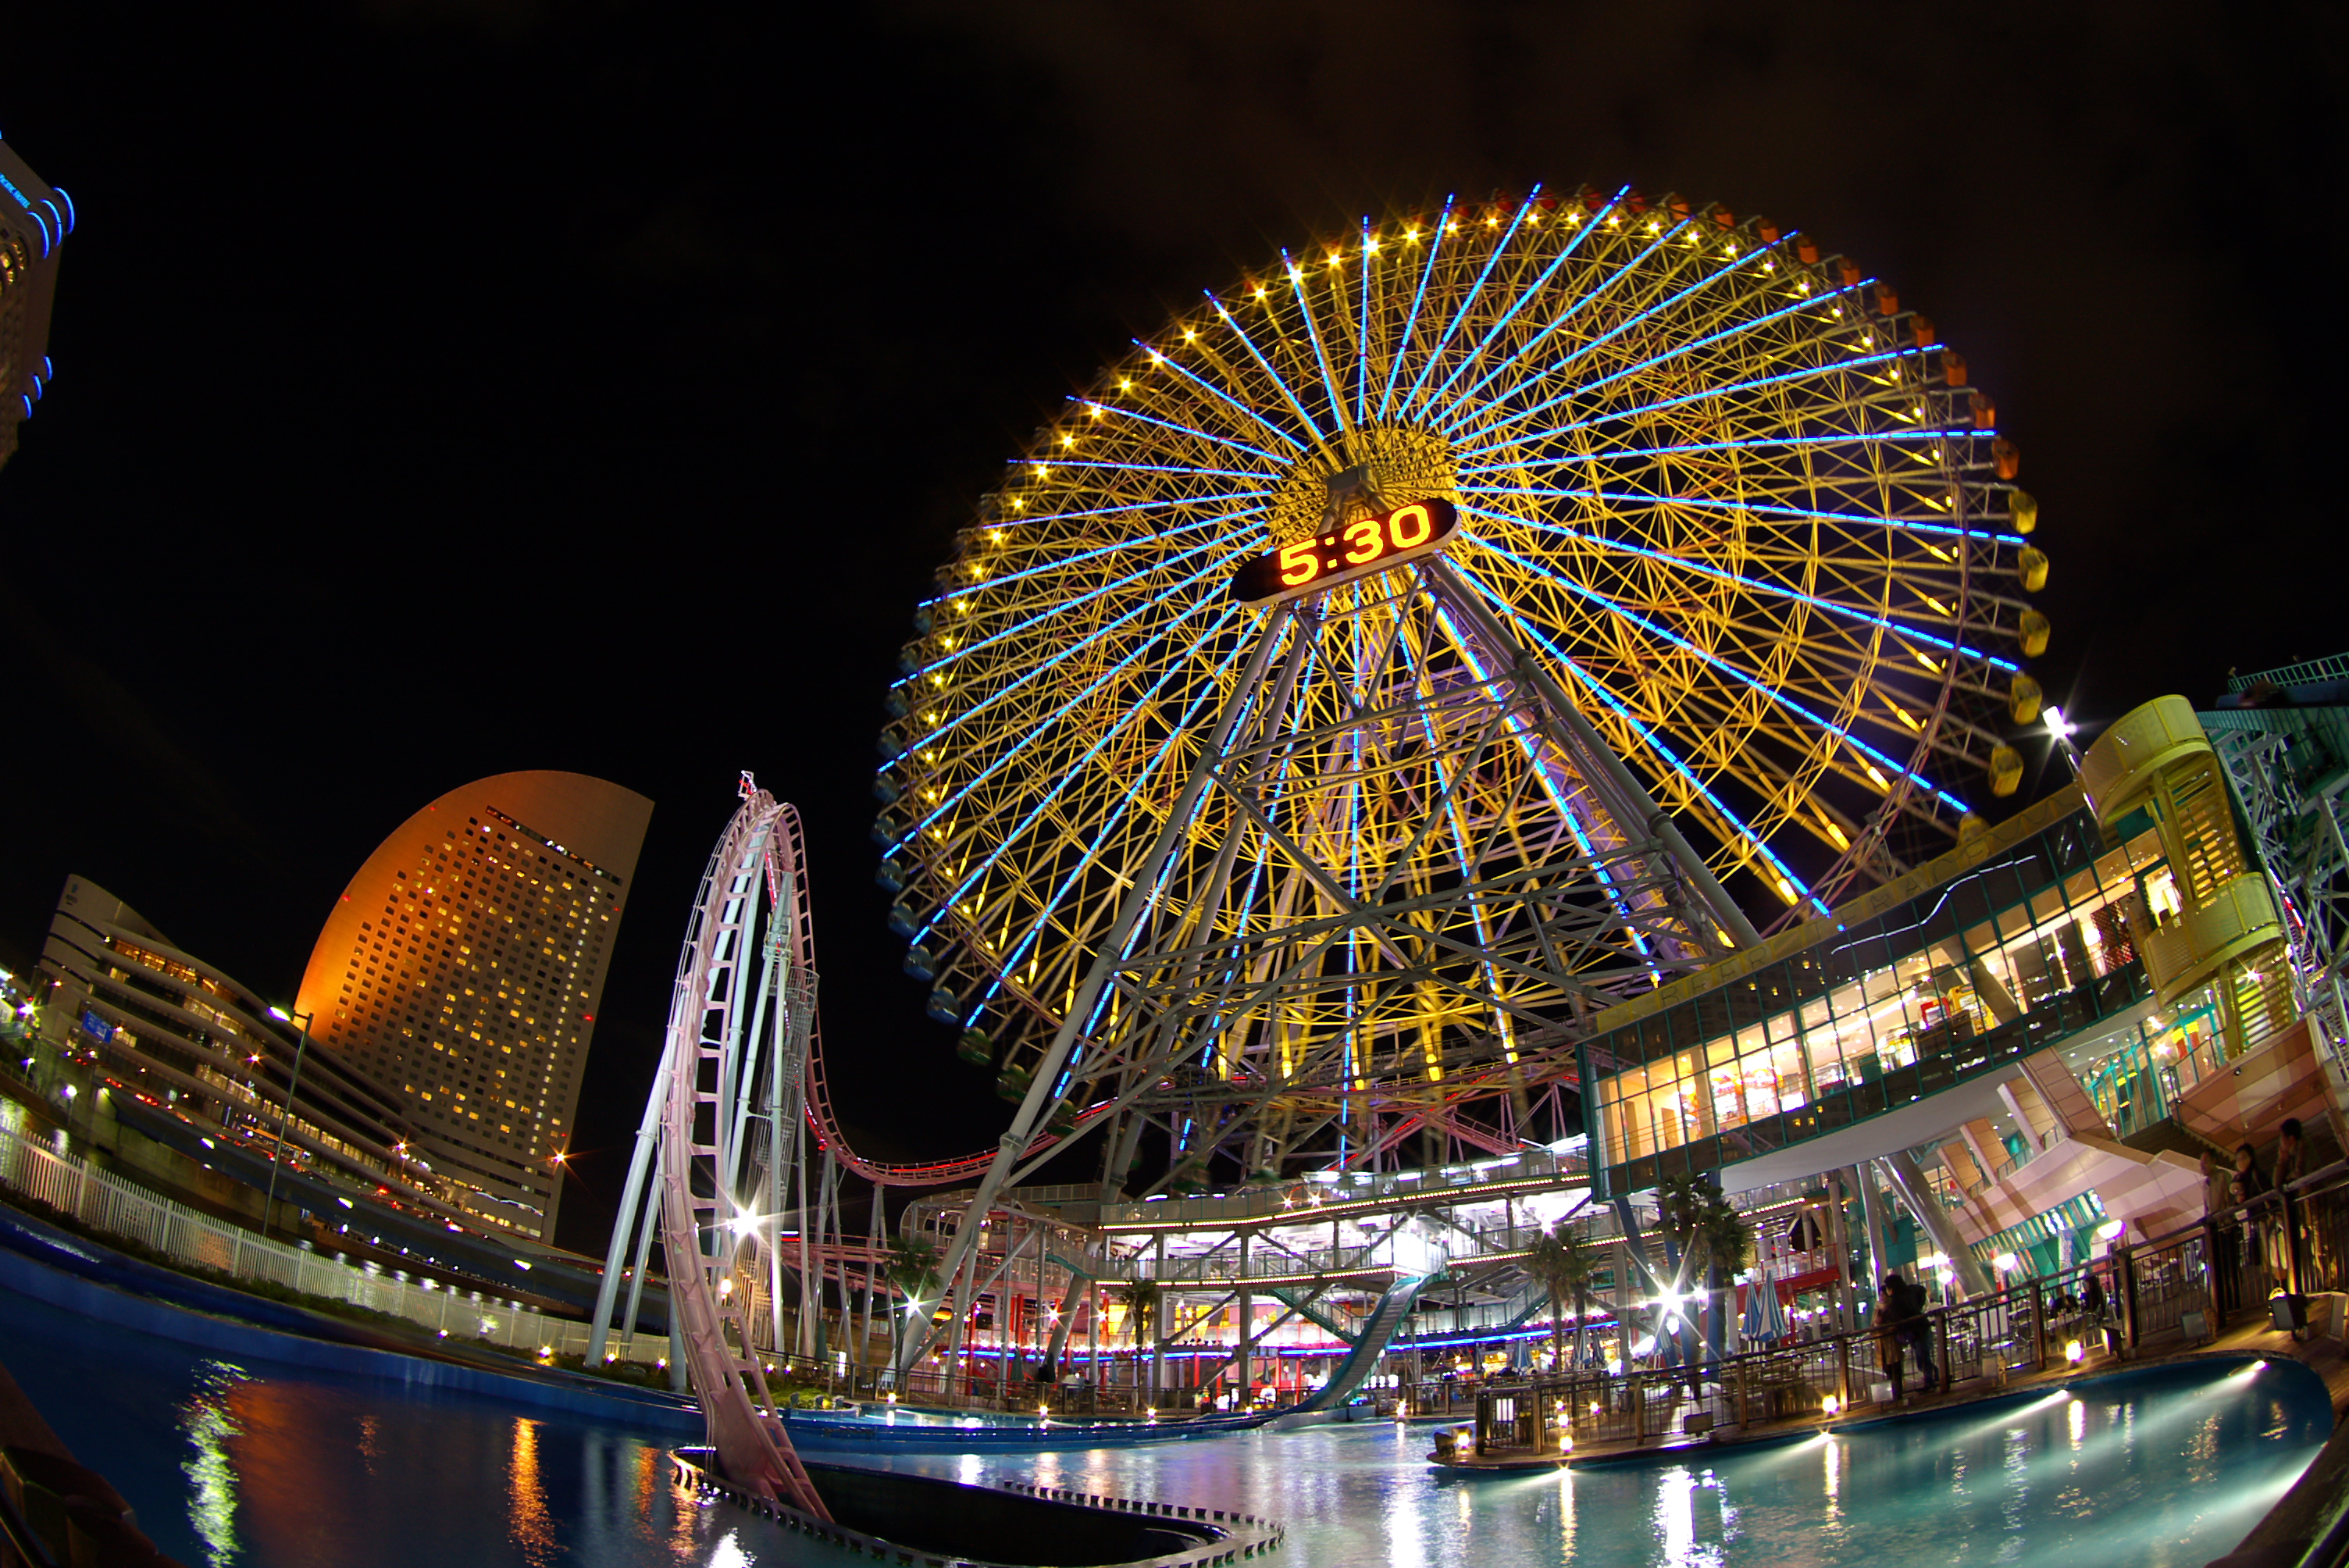 smc PENTAX-DA FISH-EYE10-17mmF3.5-4.